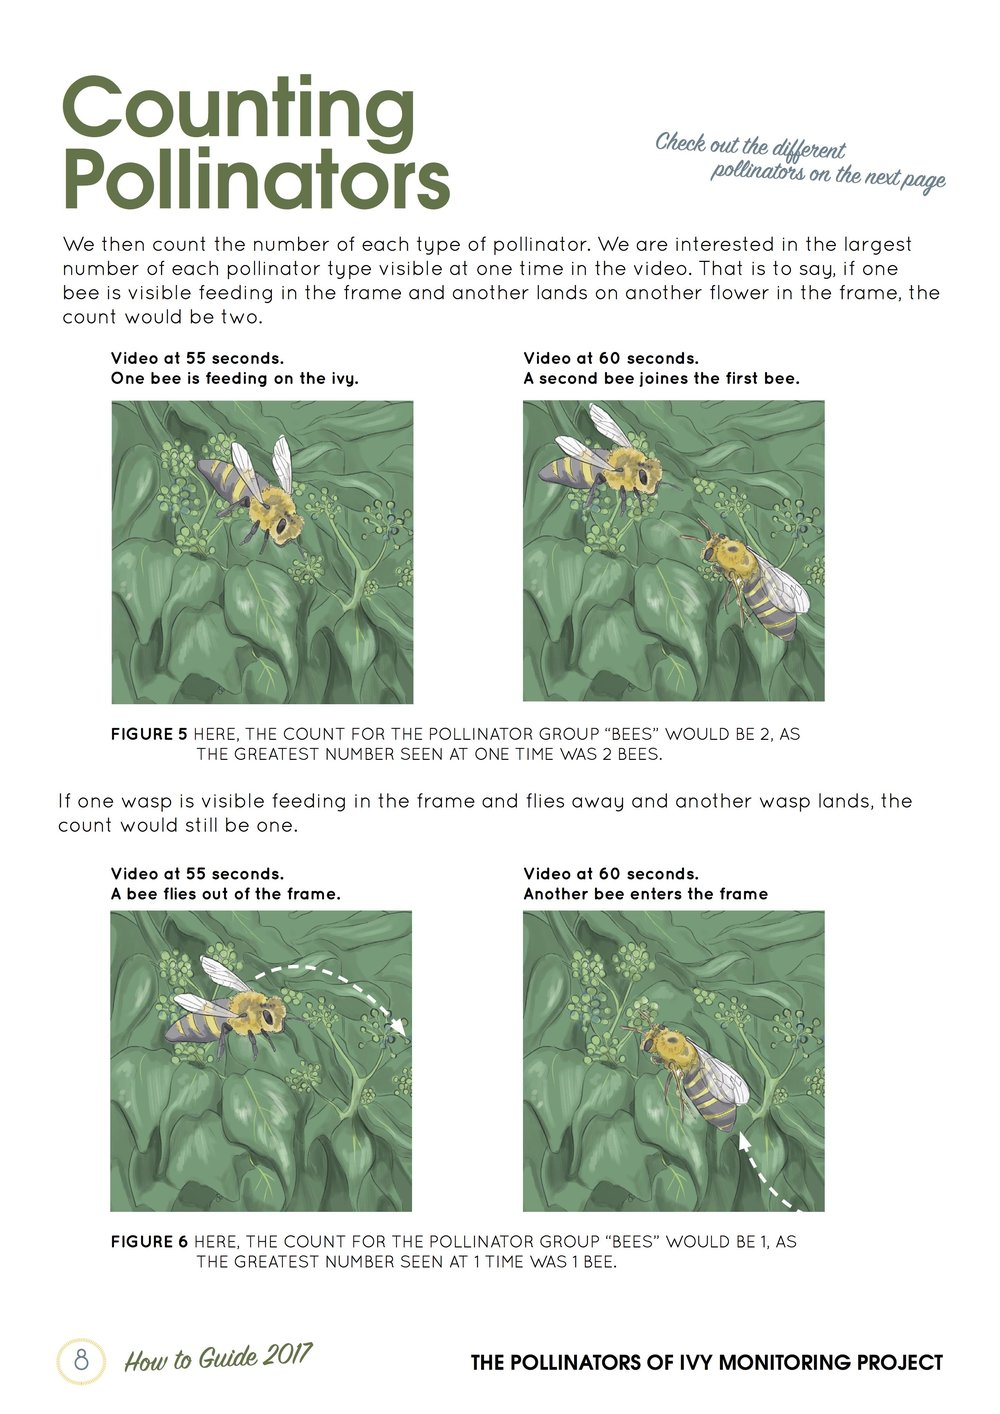 ThePollinatorsofIvyMonitoringProject_HowToGuide_April2017_DraftPages.jpg